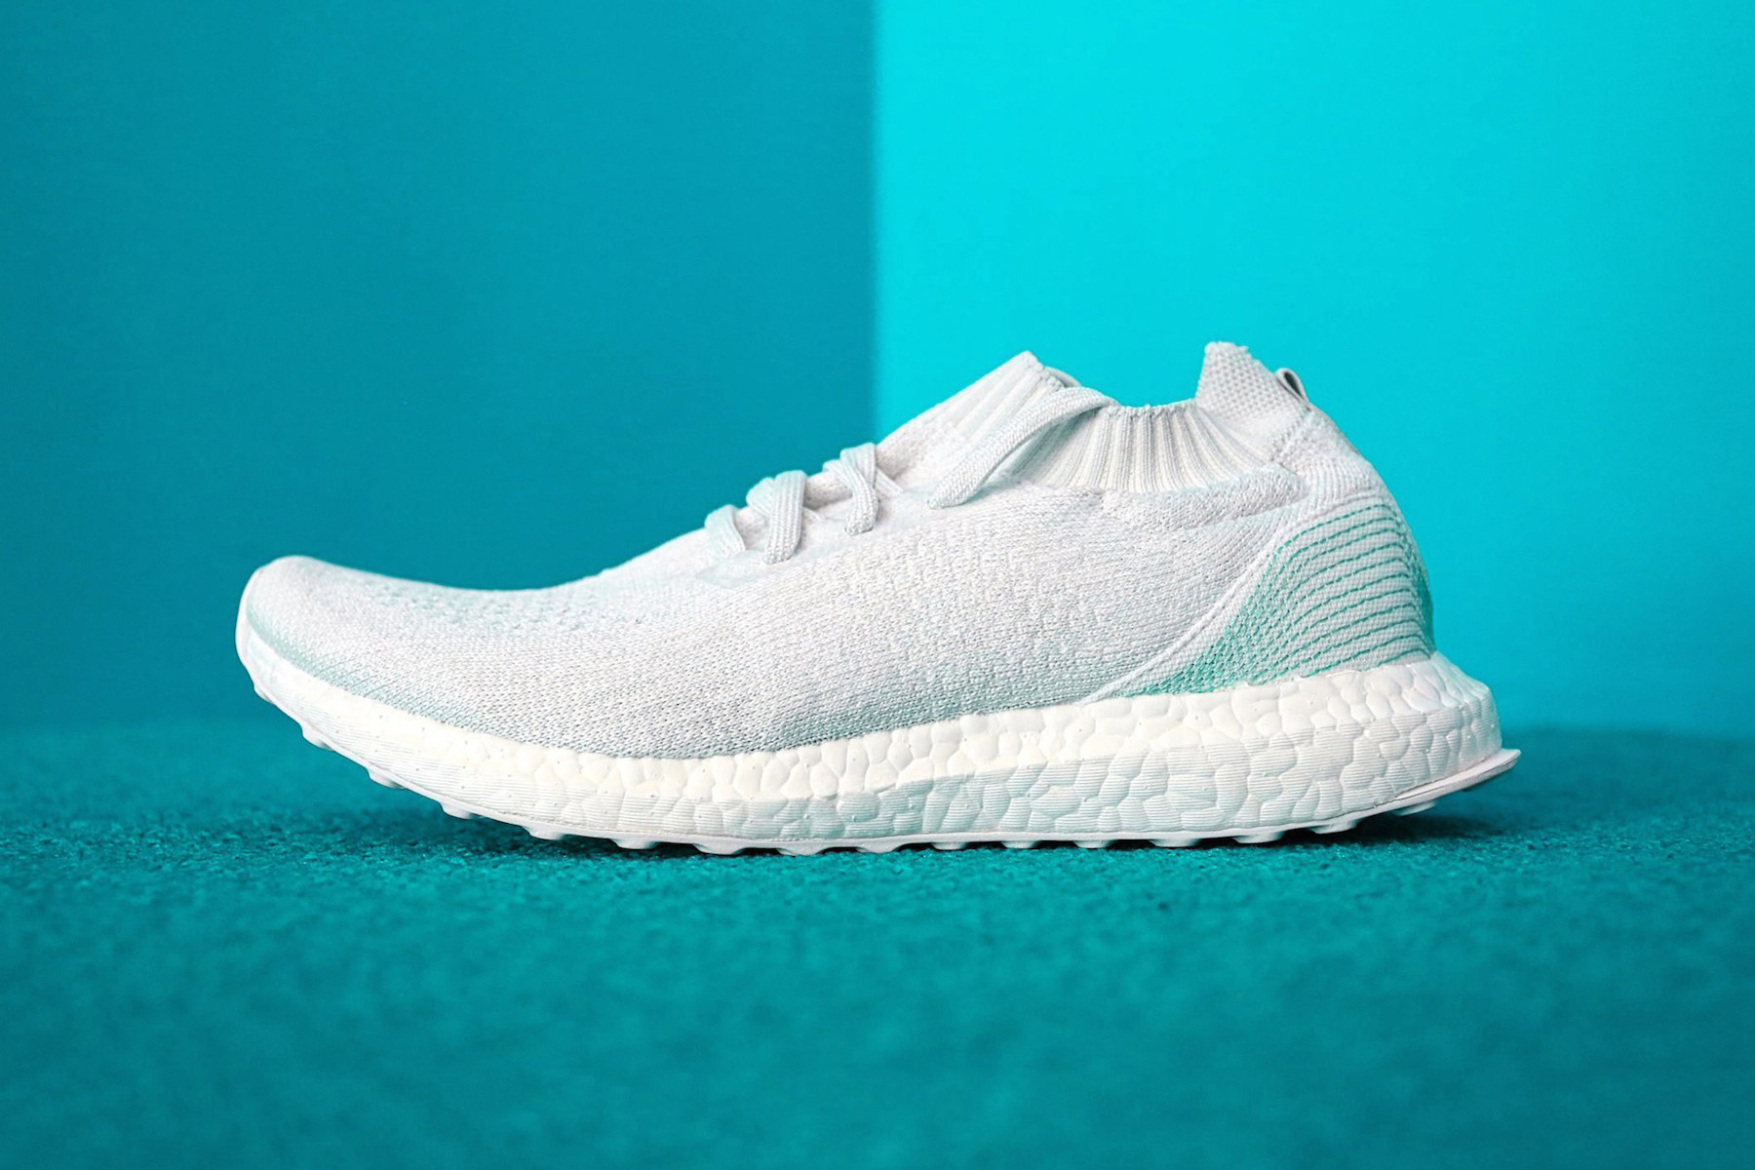 new style a24a4 b0f25 Adidas x Parley for the Oceans